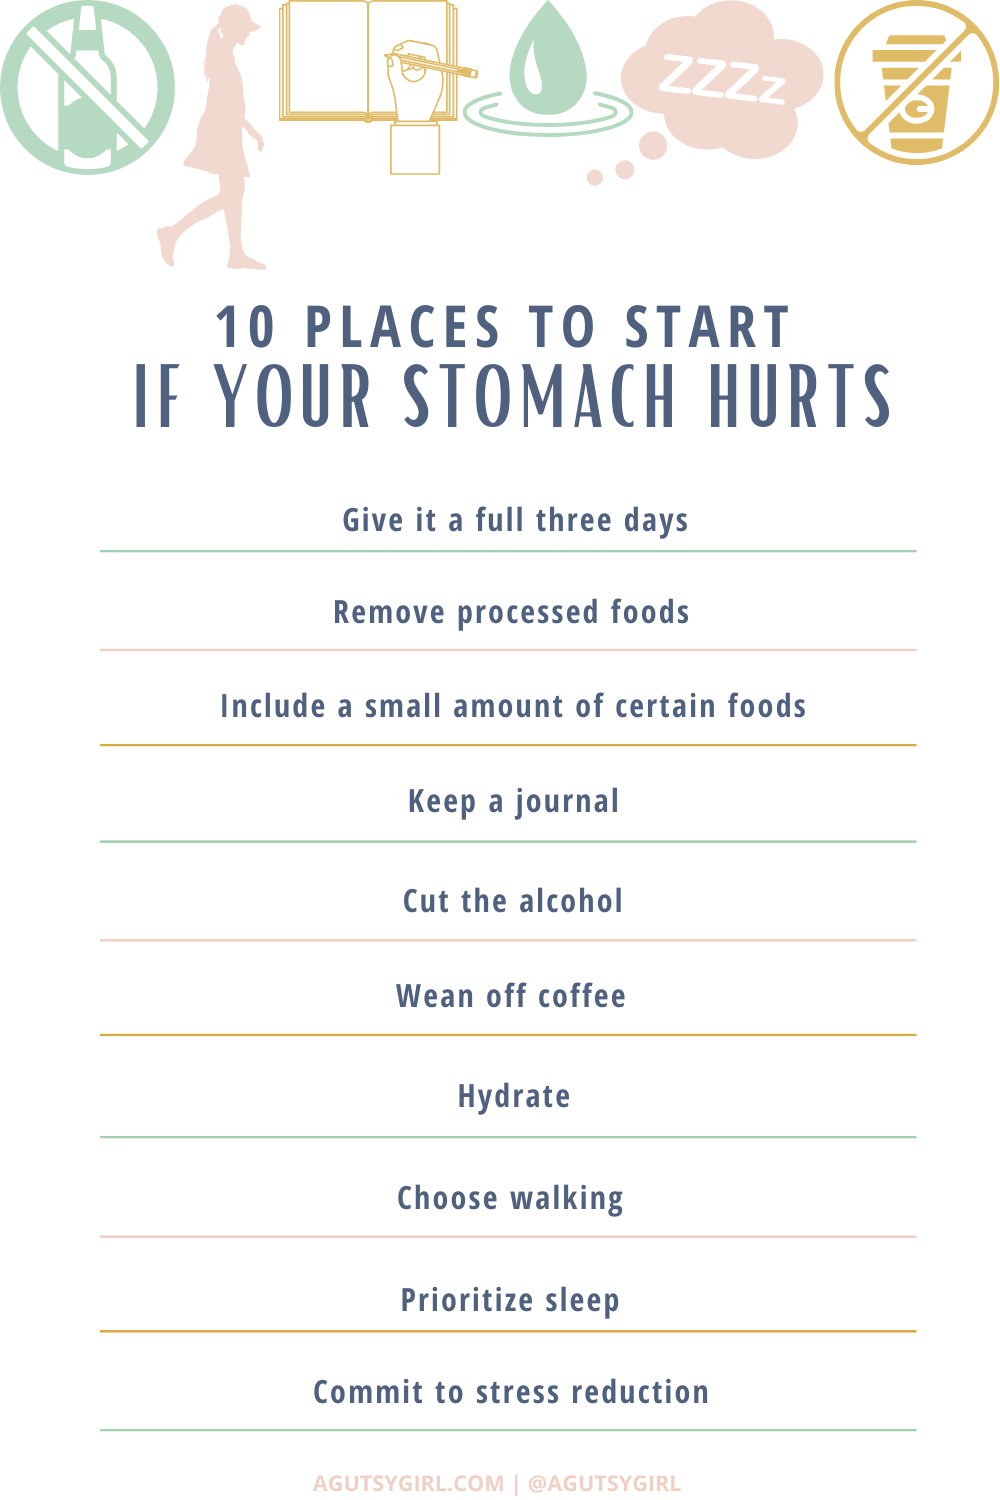 Why Does My Stomach Hurt agutsygirl.com #3daygutreset #gutreset #guthealth 10 places to start if your stomach hurts